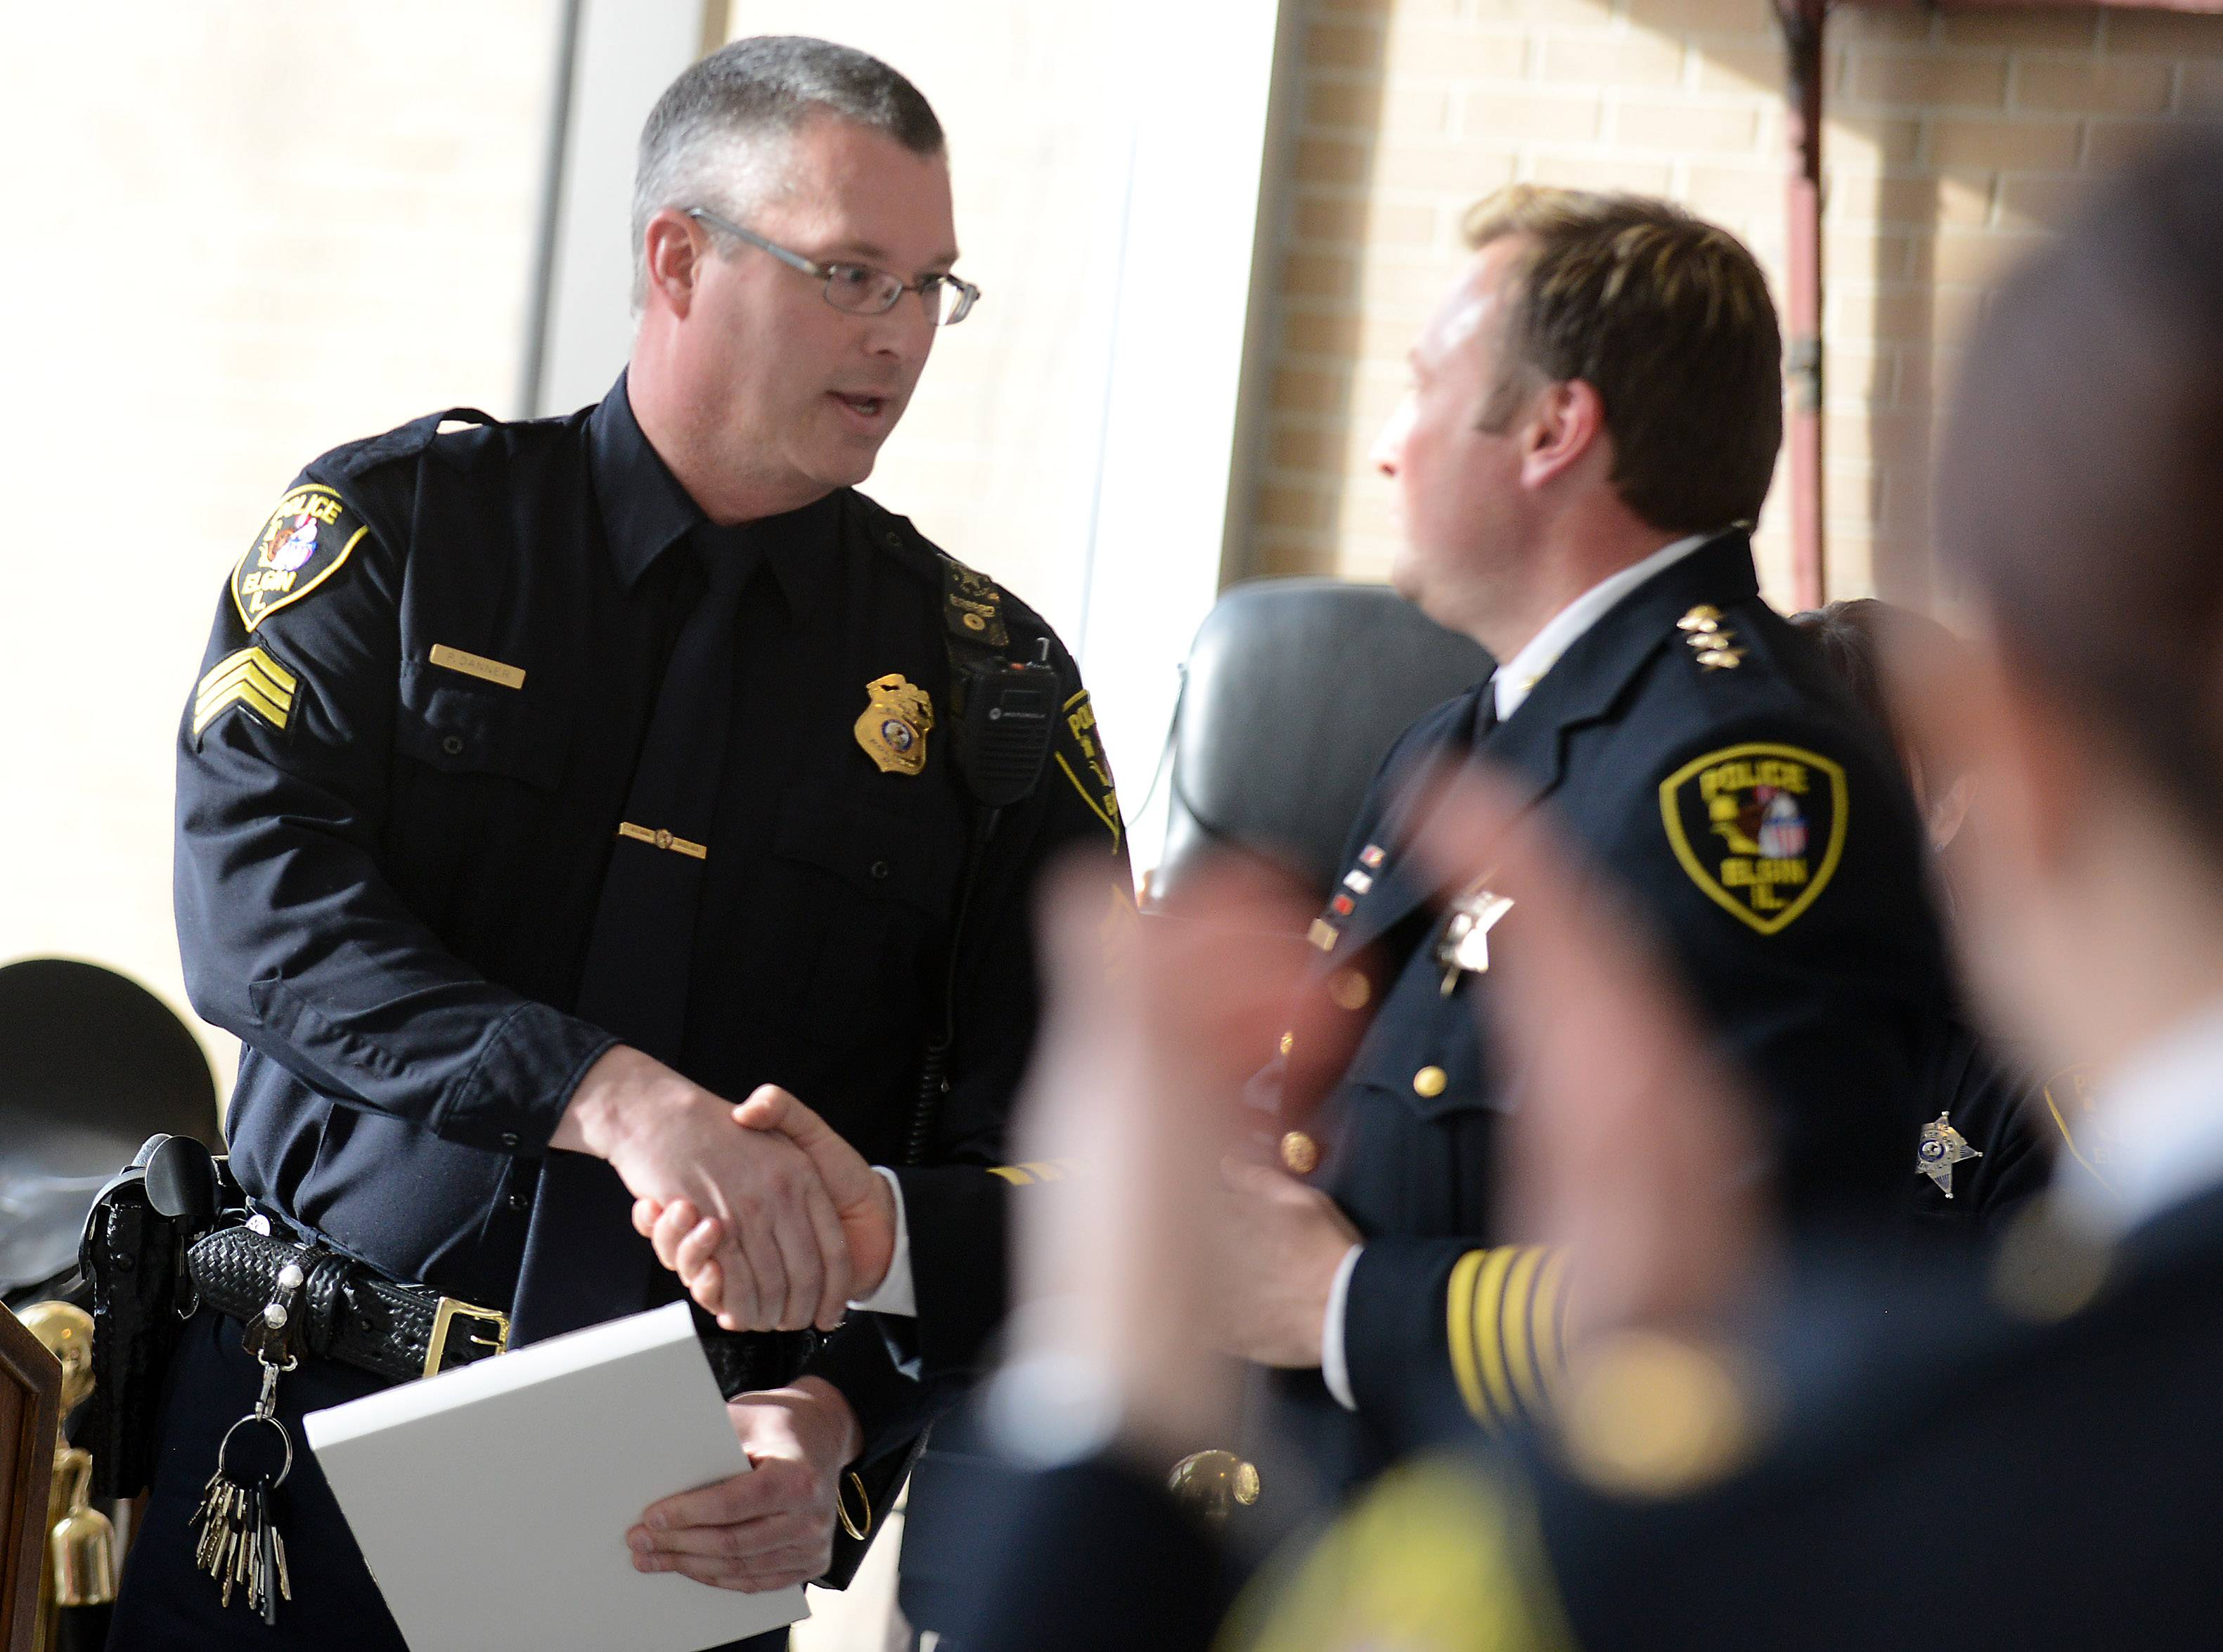 Sgt. Phil Danner, left, shakes hands with Elgin Police Chief Jeff Swoboda after being named Manager of the Year during the Elgin Police Department's annual awards ceremony Monday.